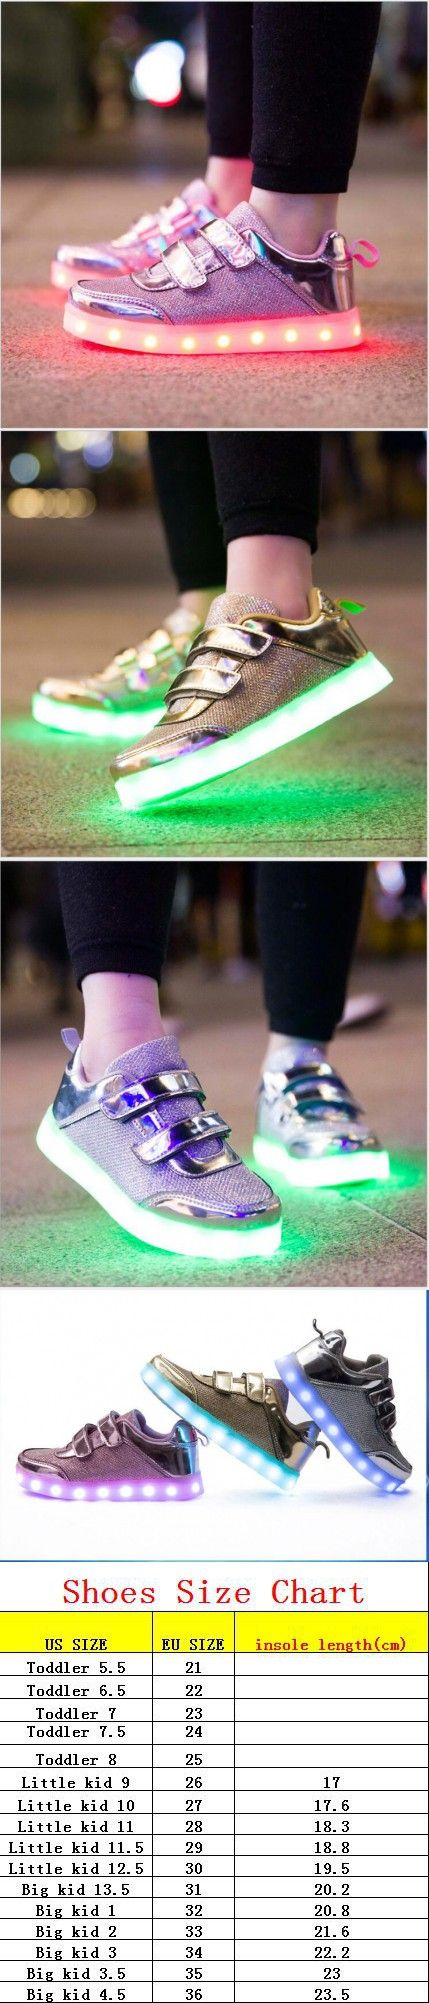 8 Color Kids Sneakers Fashion Charging Luminous Lighted Colorful LED lights…